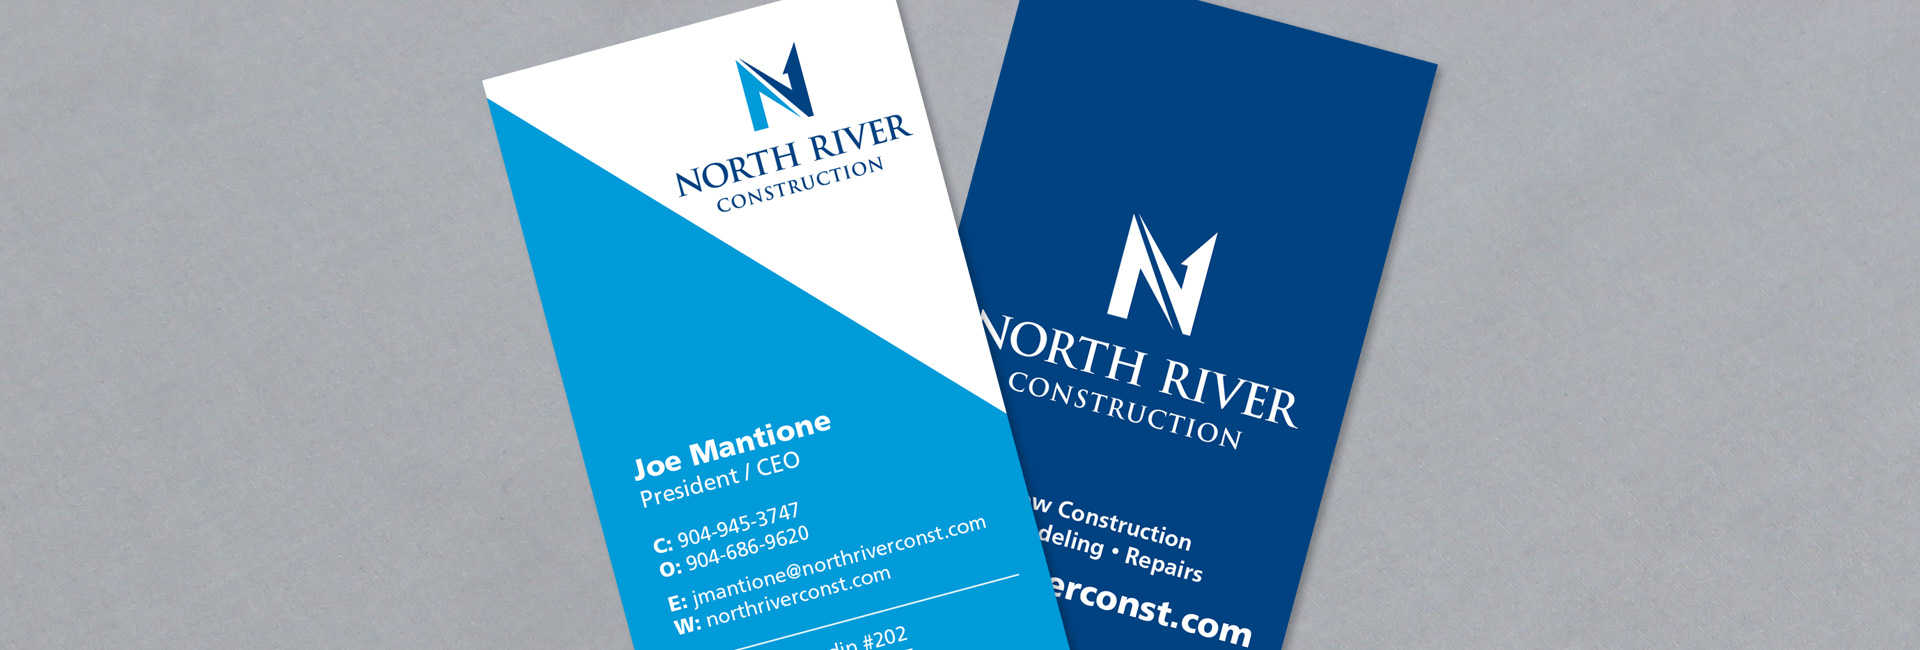 NorthRiver-businesscards-Slider